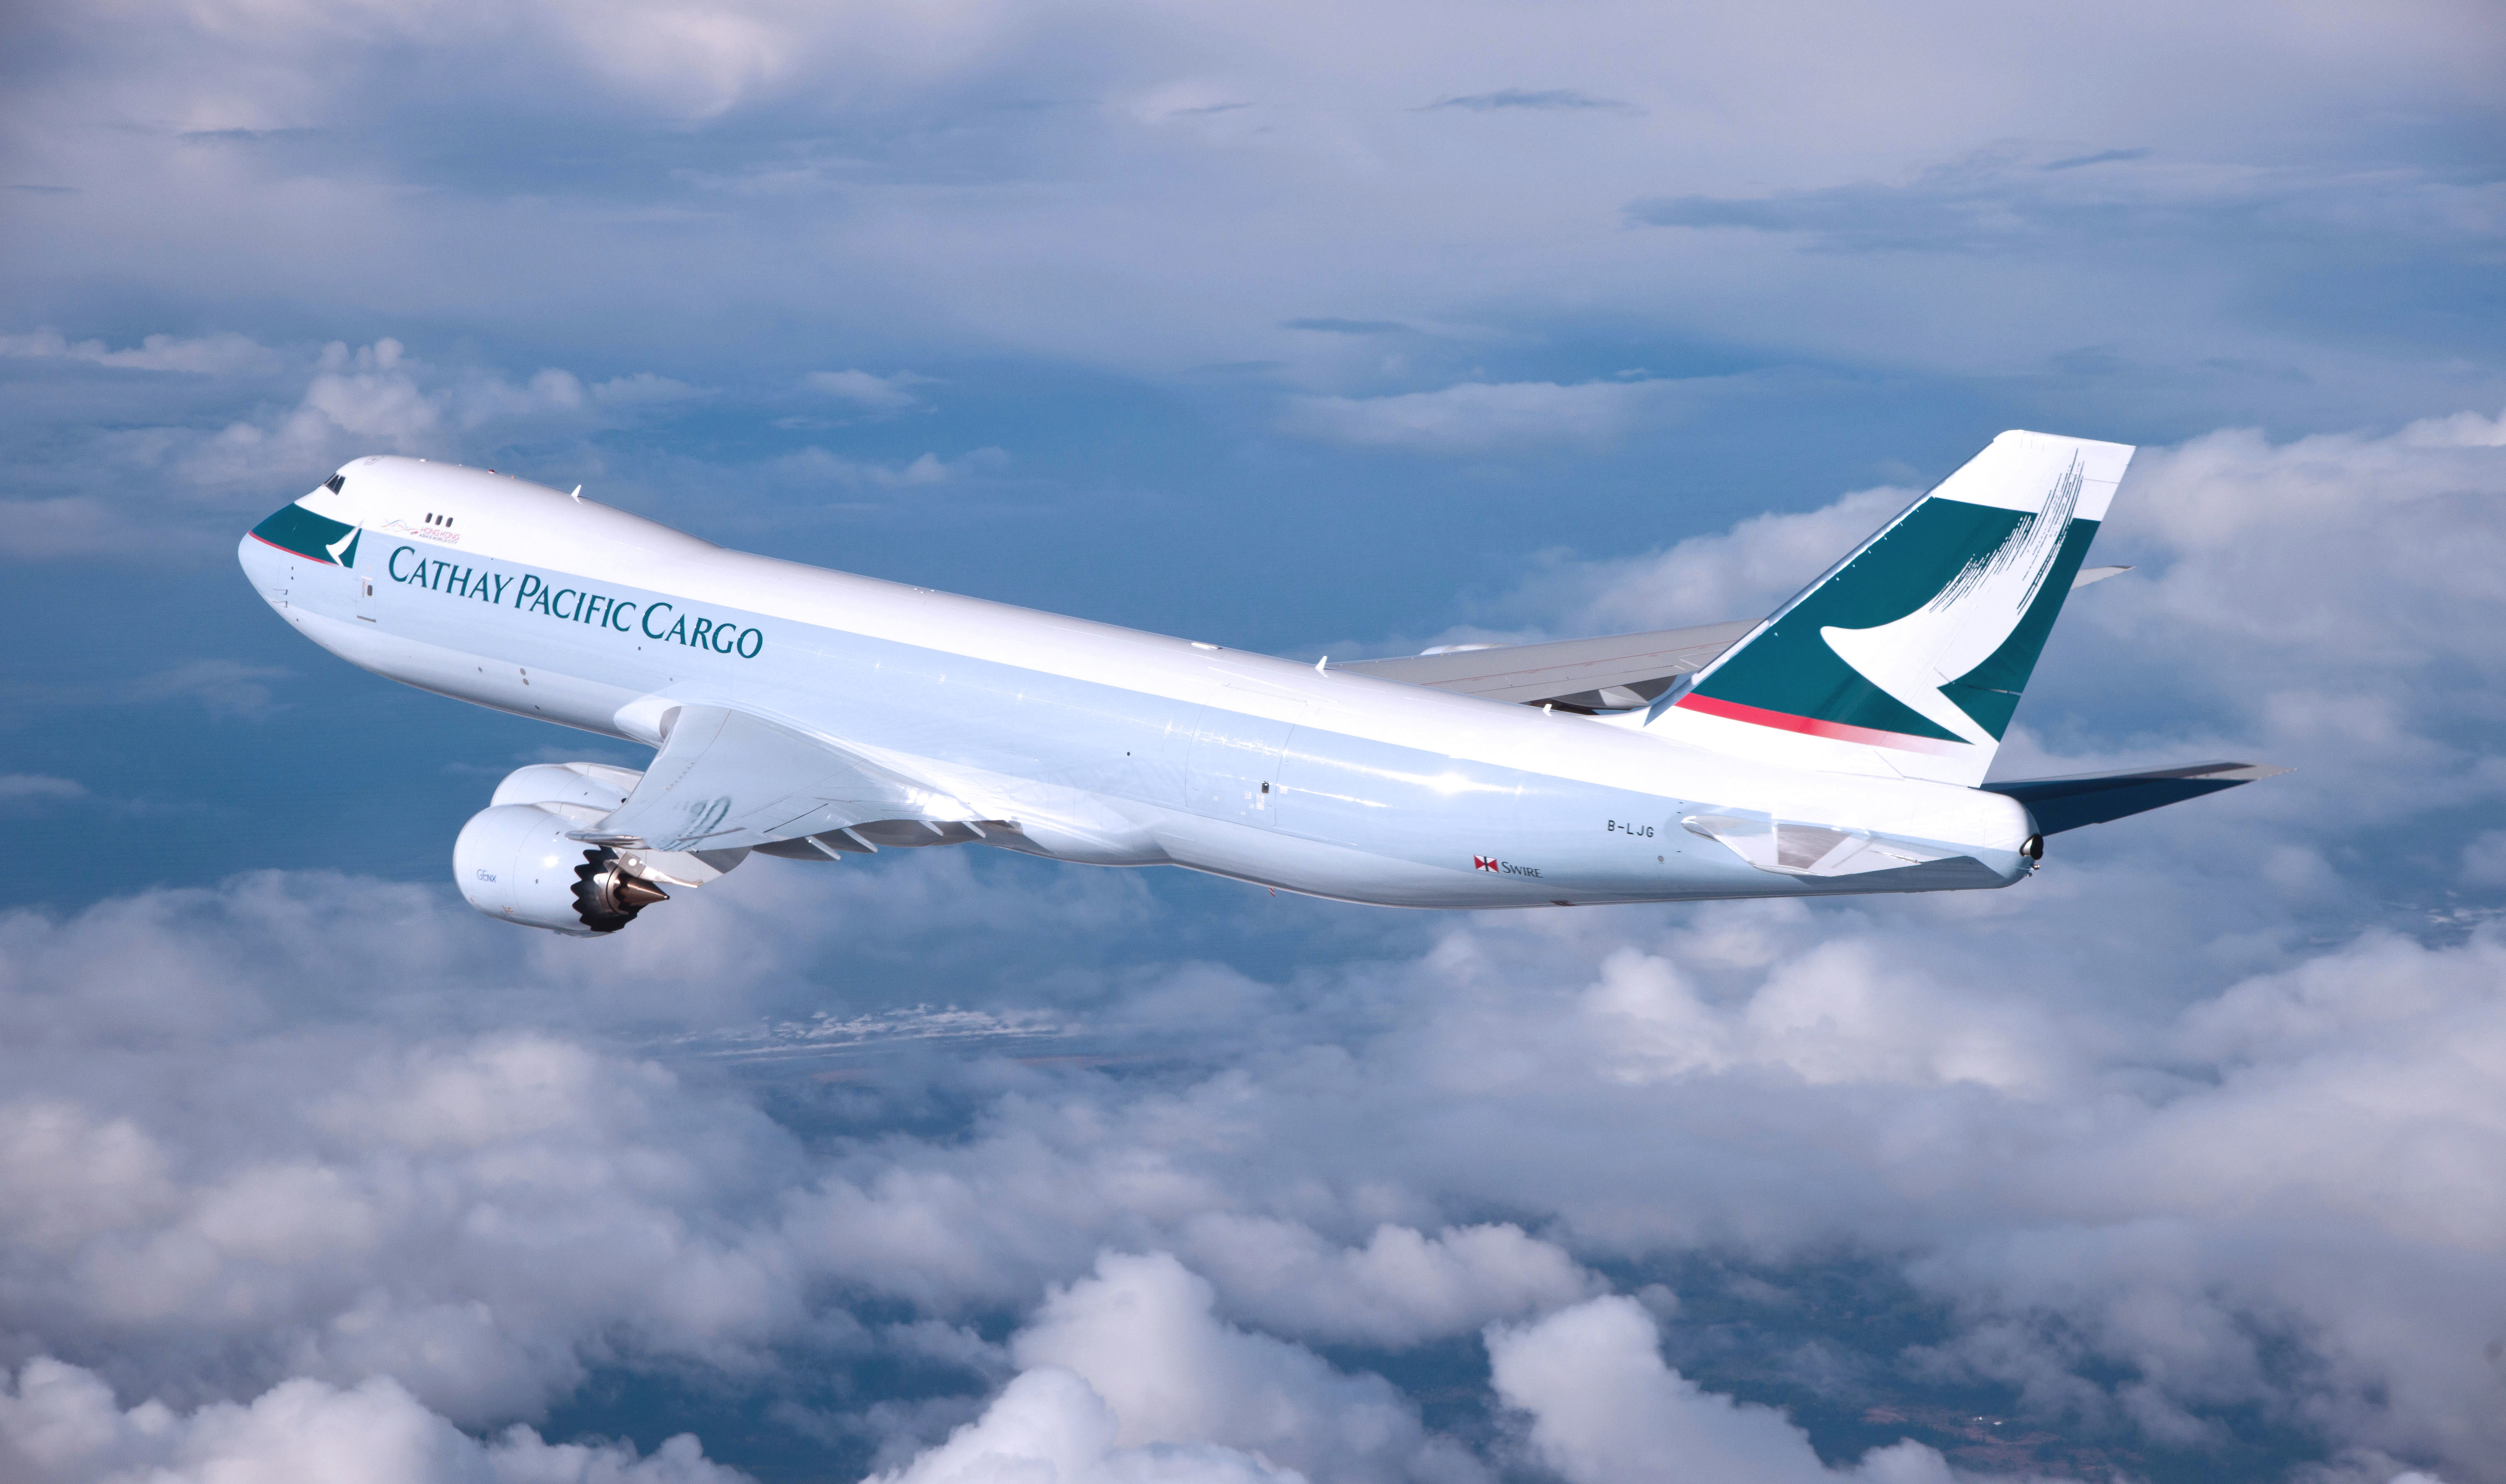 Wallpapers Aviation Airplane Passenger Airplanes Cathay 6048x3582 6048x3582